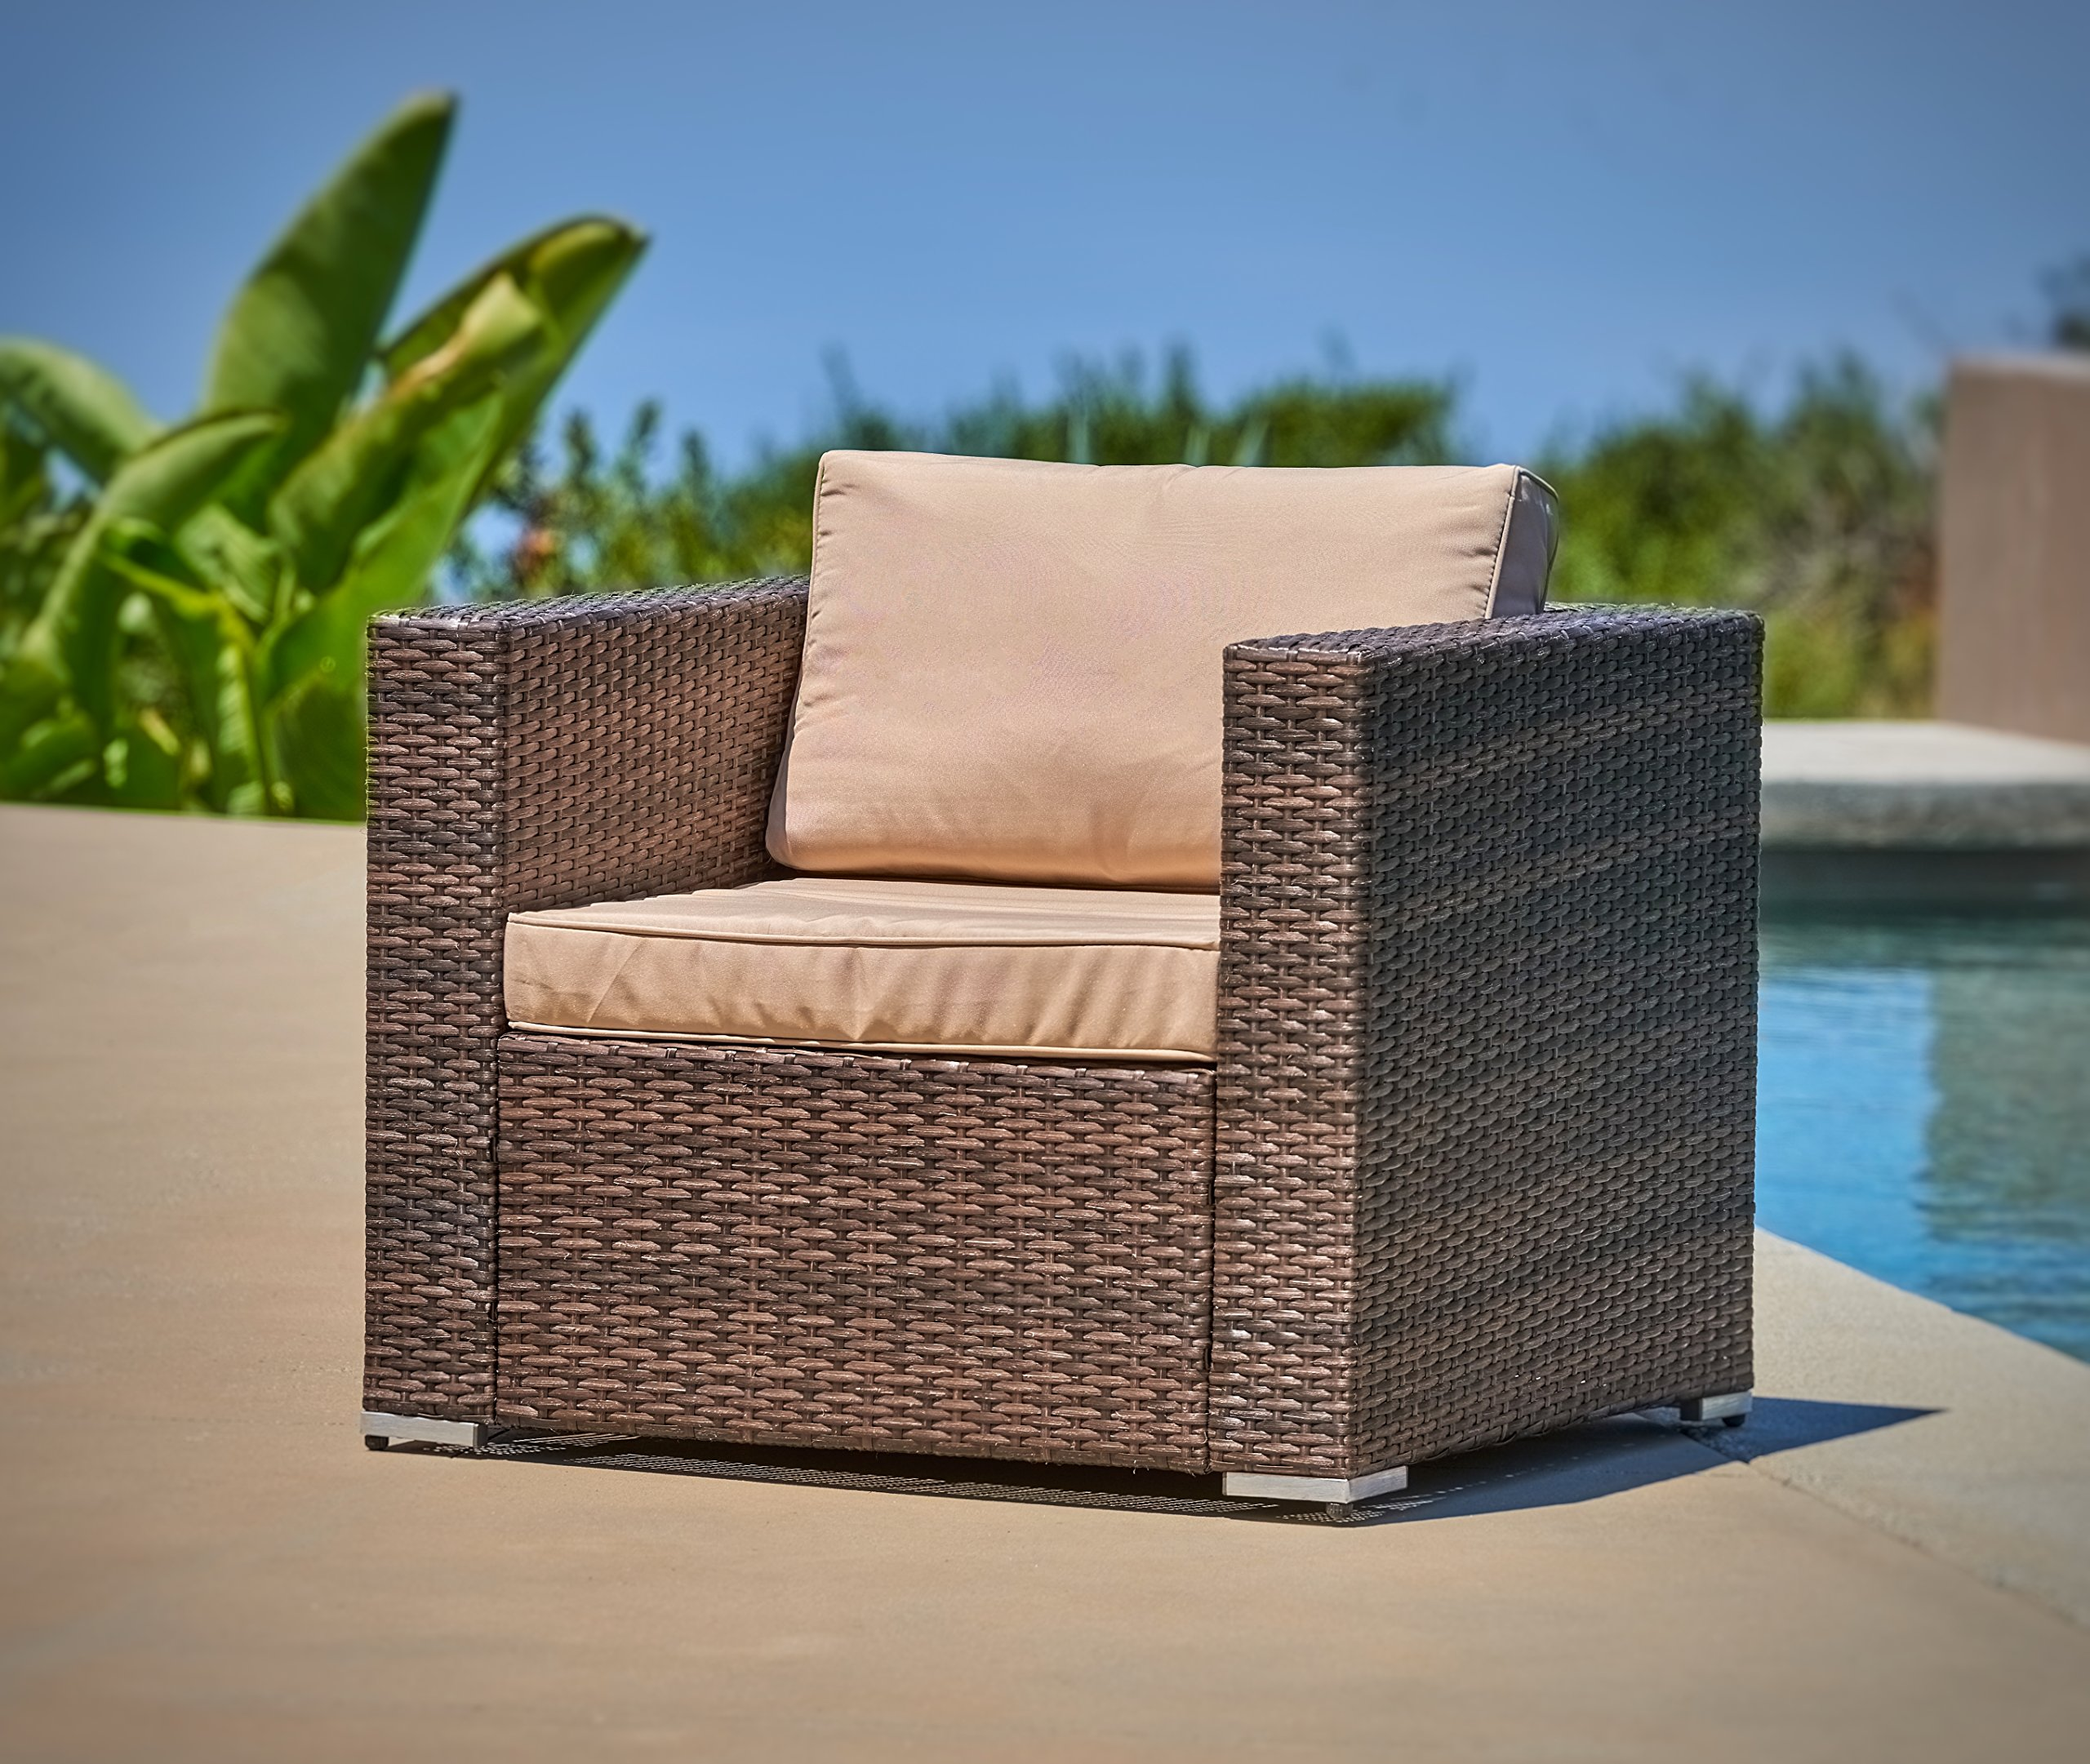 Suncrown Outdoor Furniture All Weather Brown Checkered Wicker Sofa Chair   Additional Chair for Suncrown 6-Piece Sets   Patio, Backyard, Pool   Machine Washable Cushion Covers